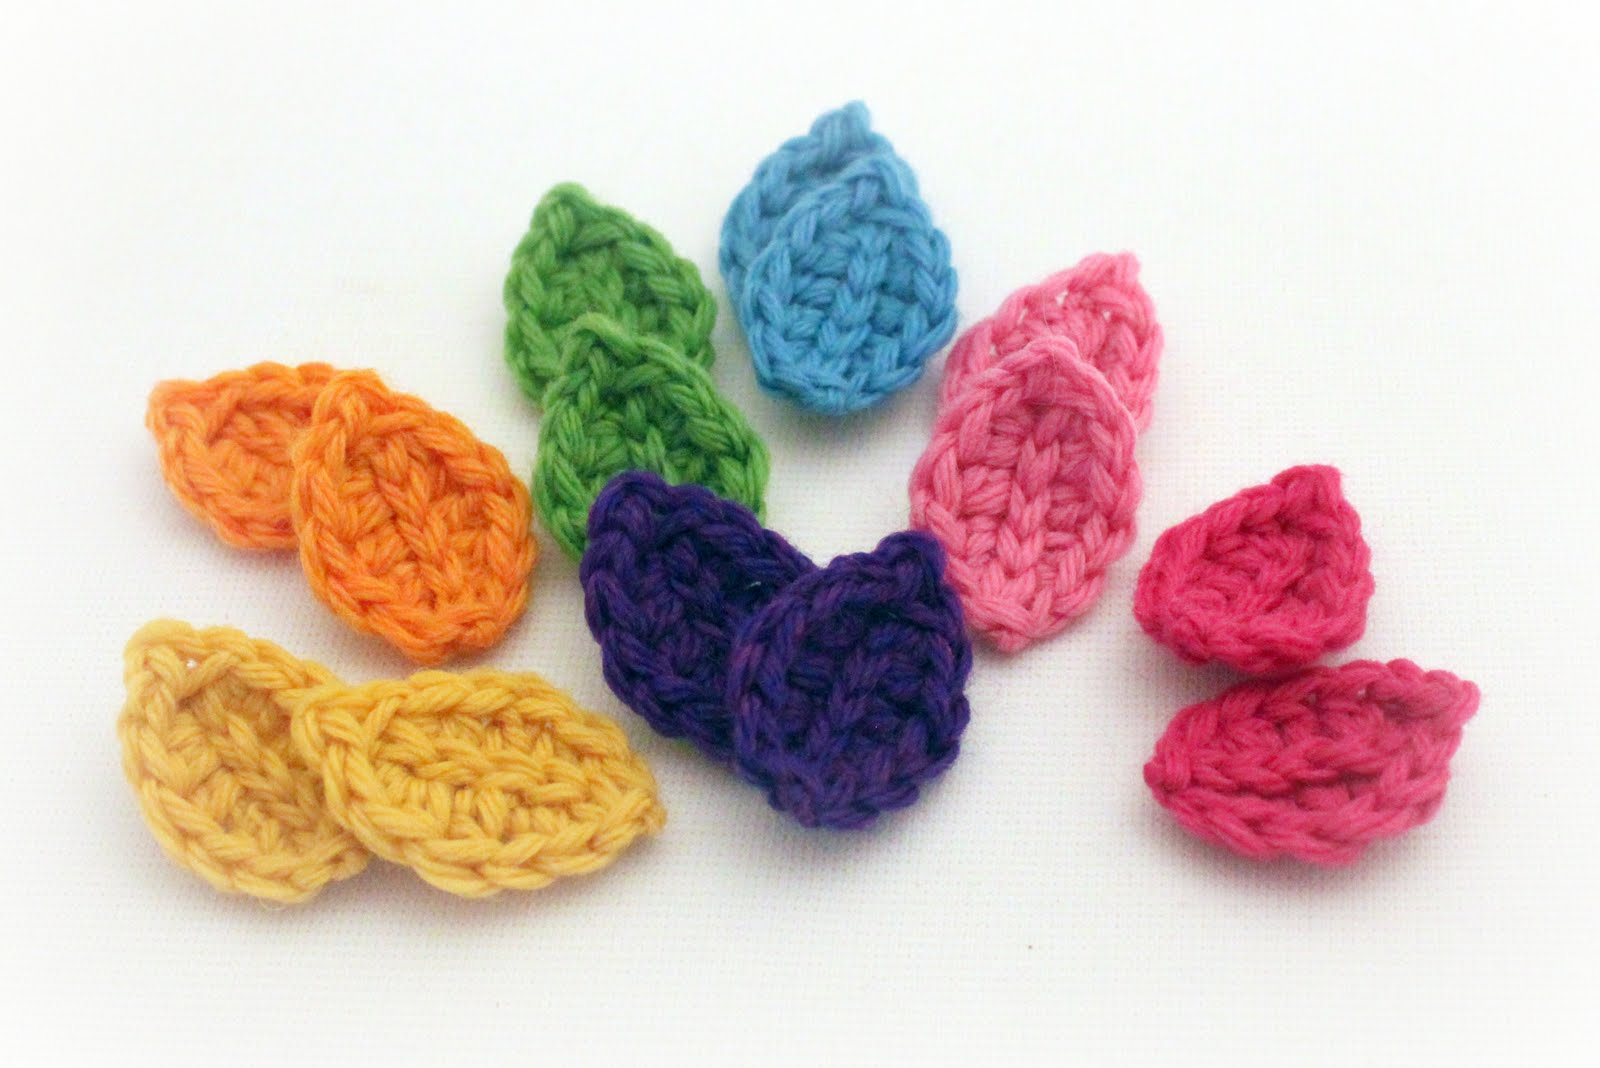 Crochet Patterns Free Leaf : Las Teje y Maneje: CROCHETED LEAVES TUTORIAL